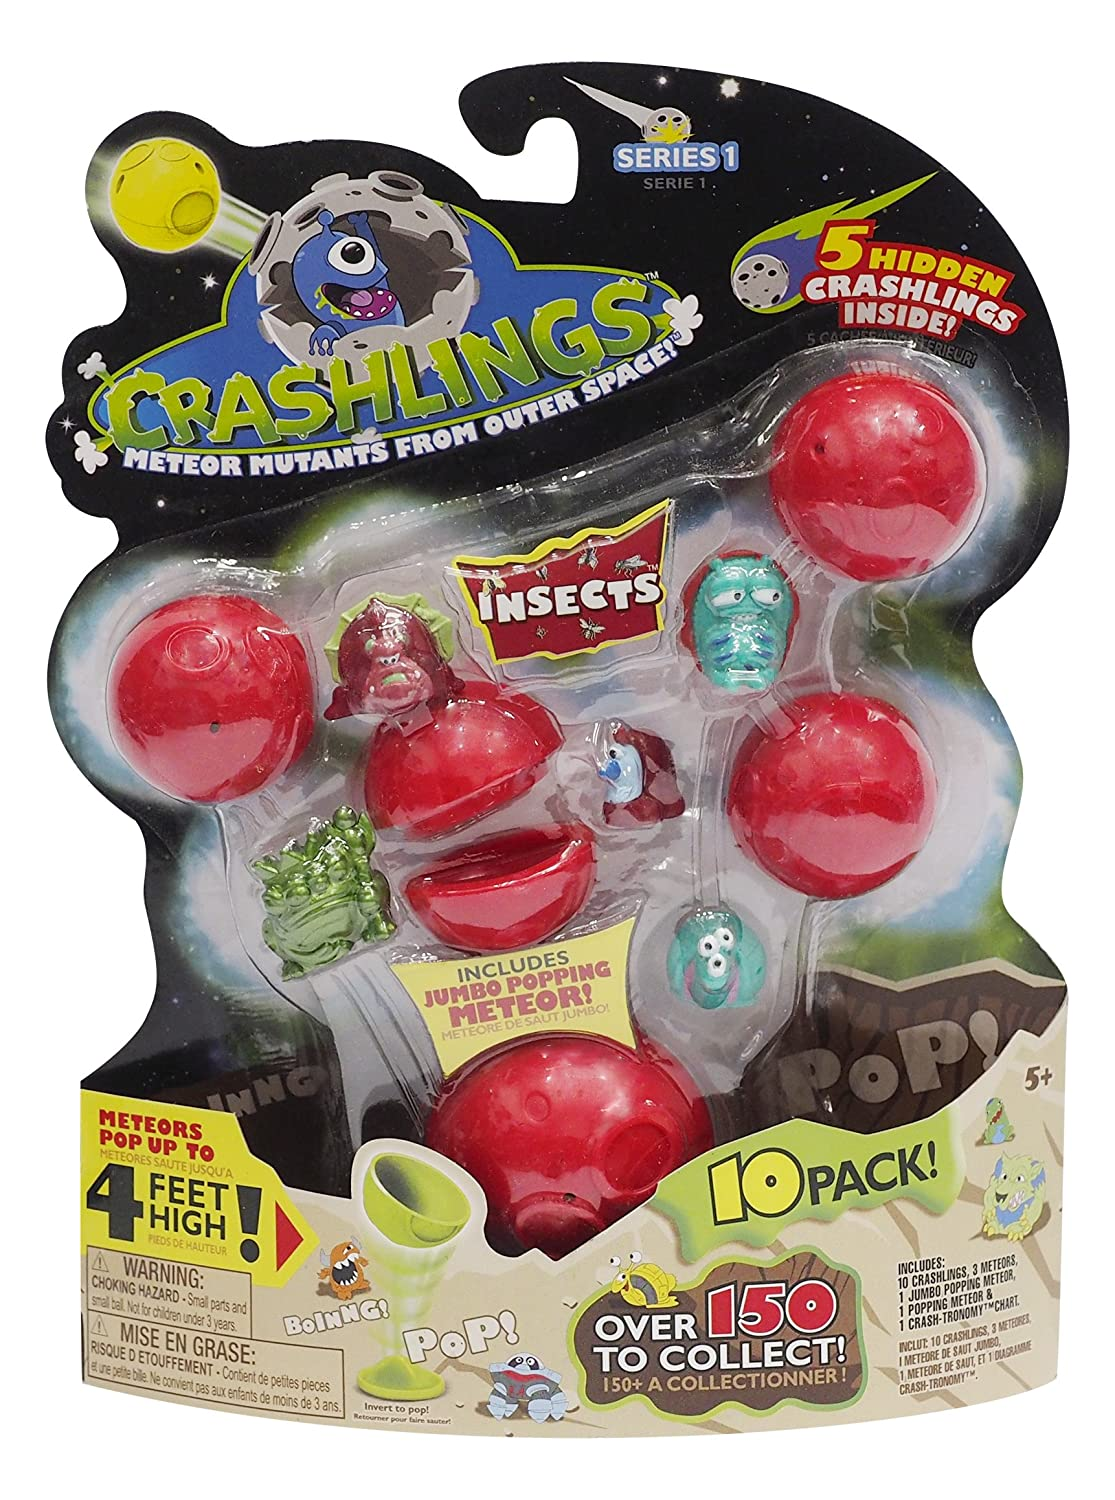 Crashlings Domestic 72002 10 Pack Random Selection Wicked Cool Toys Series 1 Mini Figures Insects